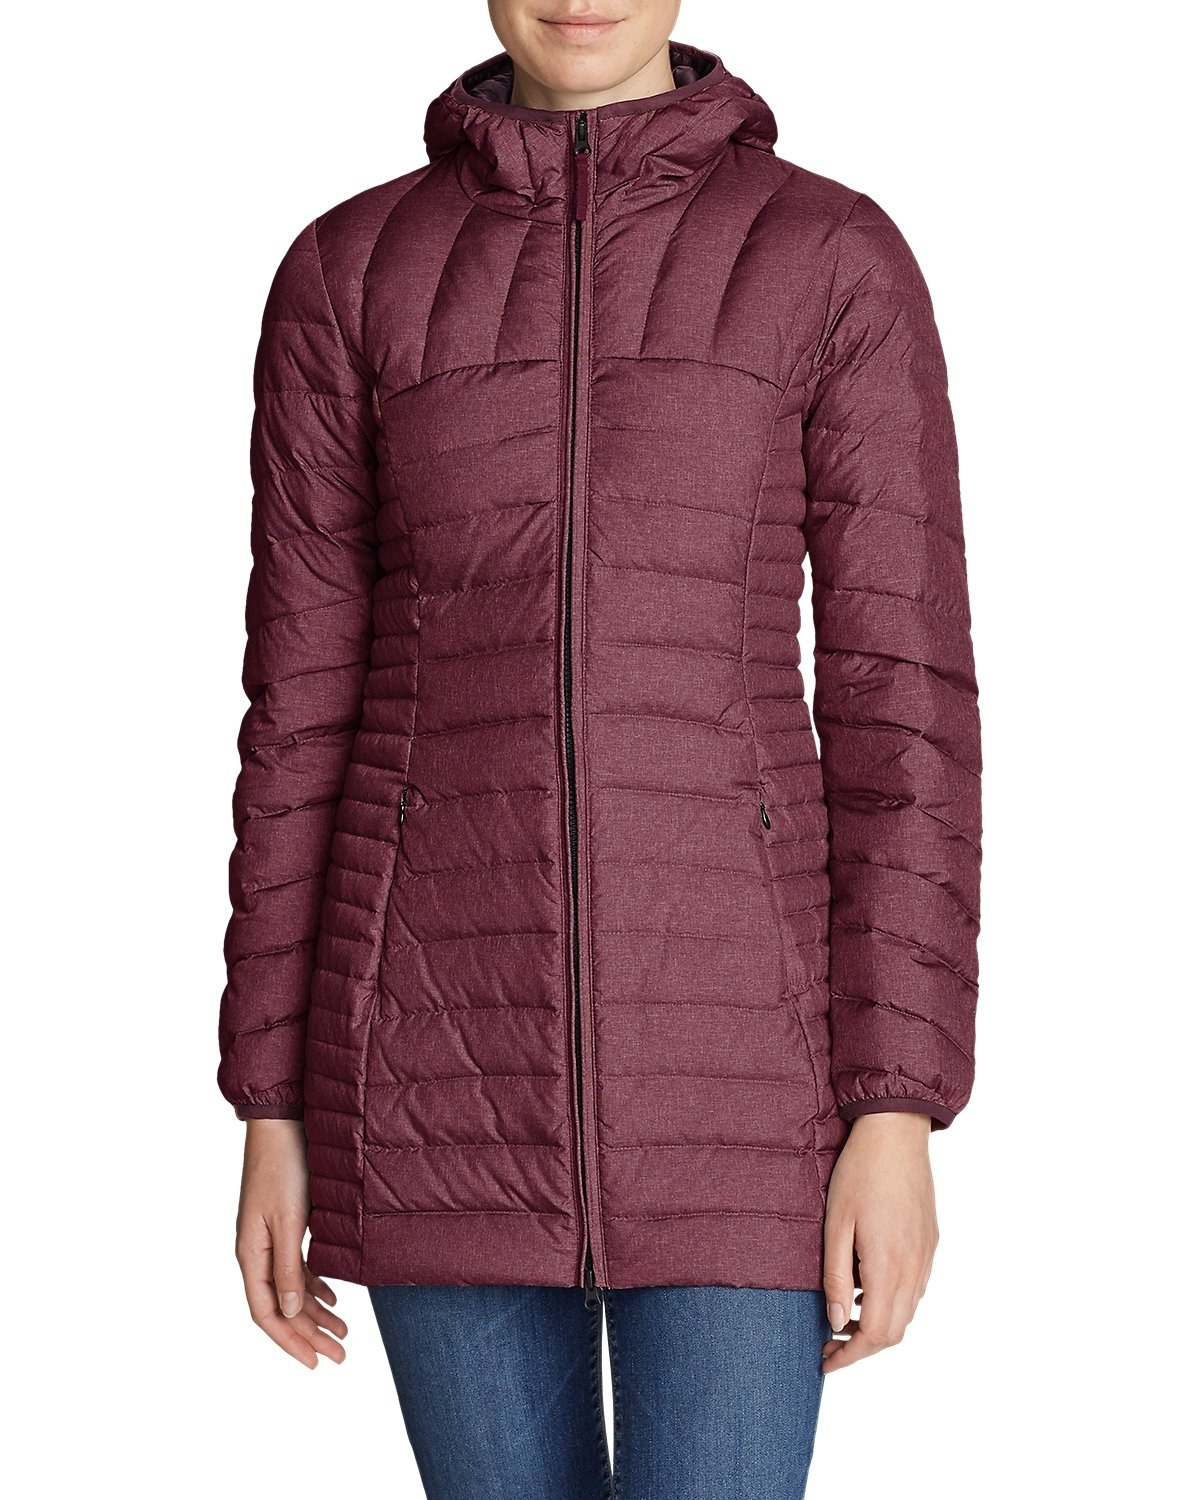 19e9c2eab 34 Of The Best Places To Buy Coats And Jackets Online